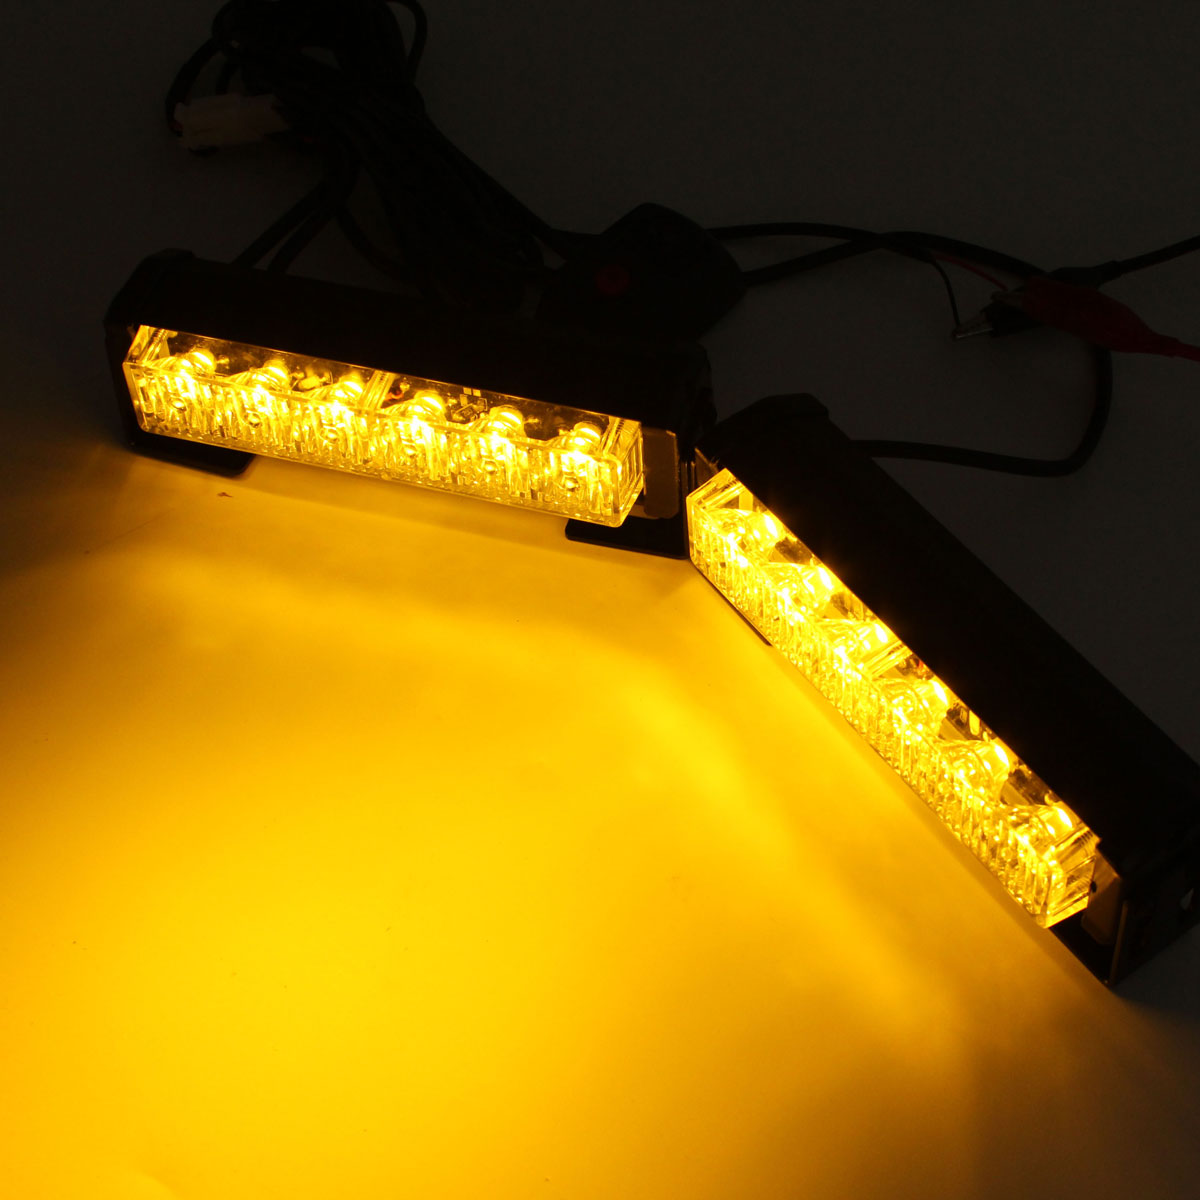 2x 6 LED 12V Amber Car Flashing Hazard Light Strobe Flash Lamp Switch Harness Car Flash Signal Emergency Warning Light